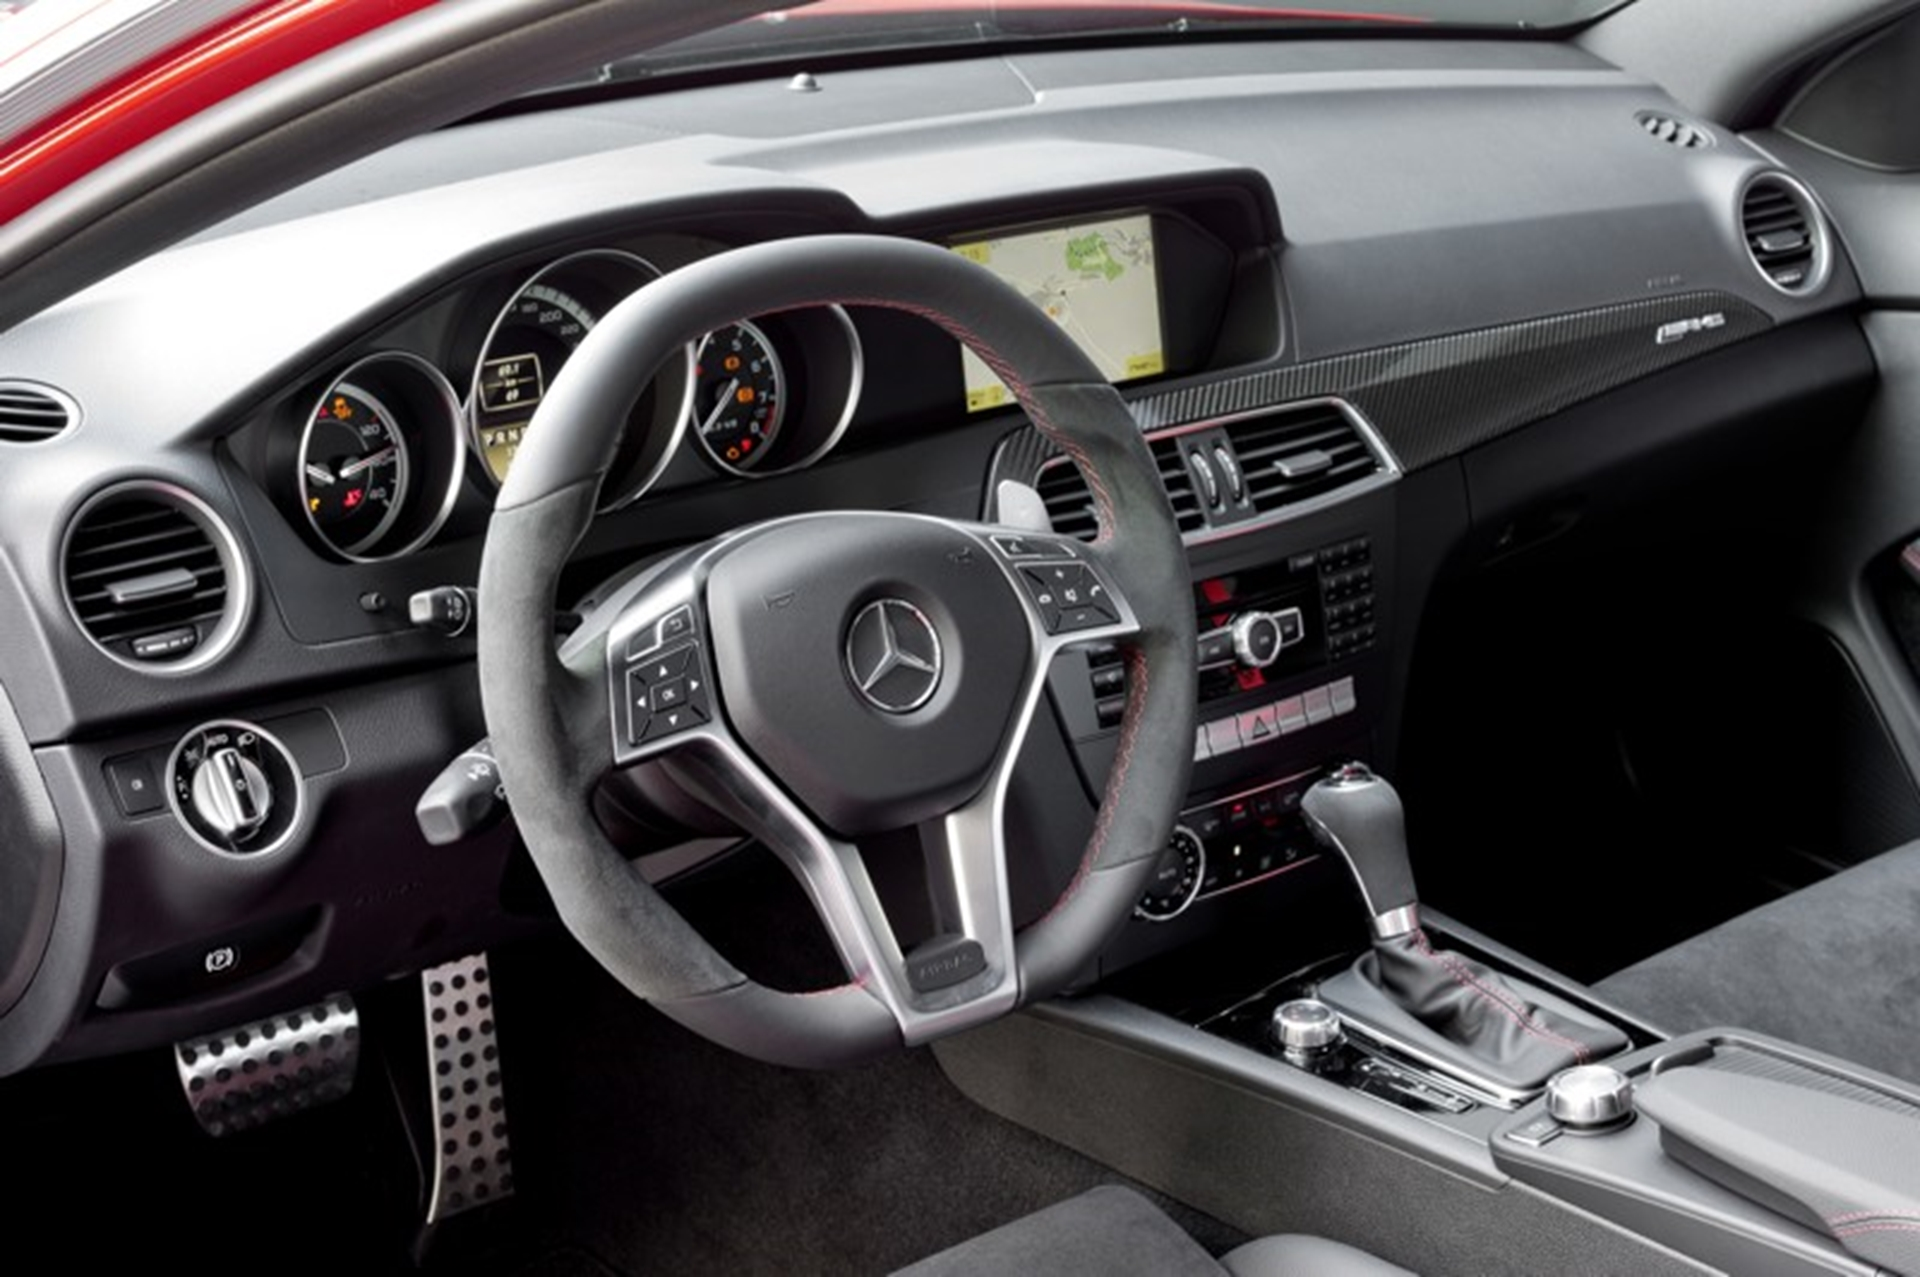 Mercedes Benz C 63 AMG Steering